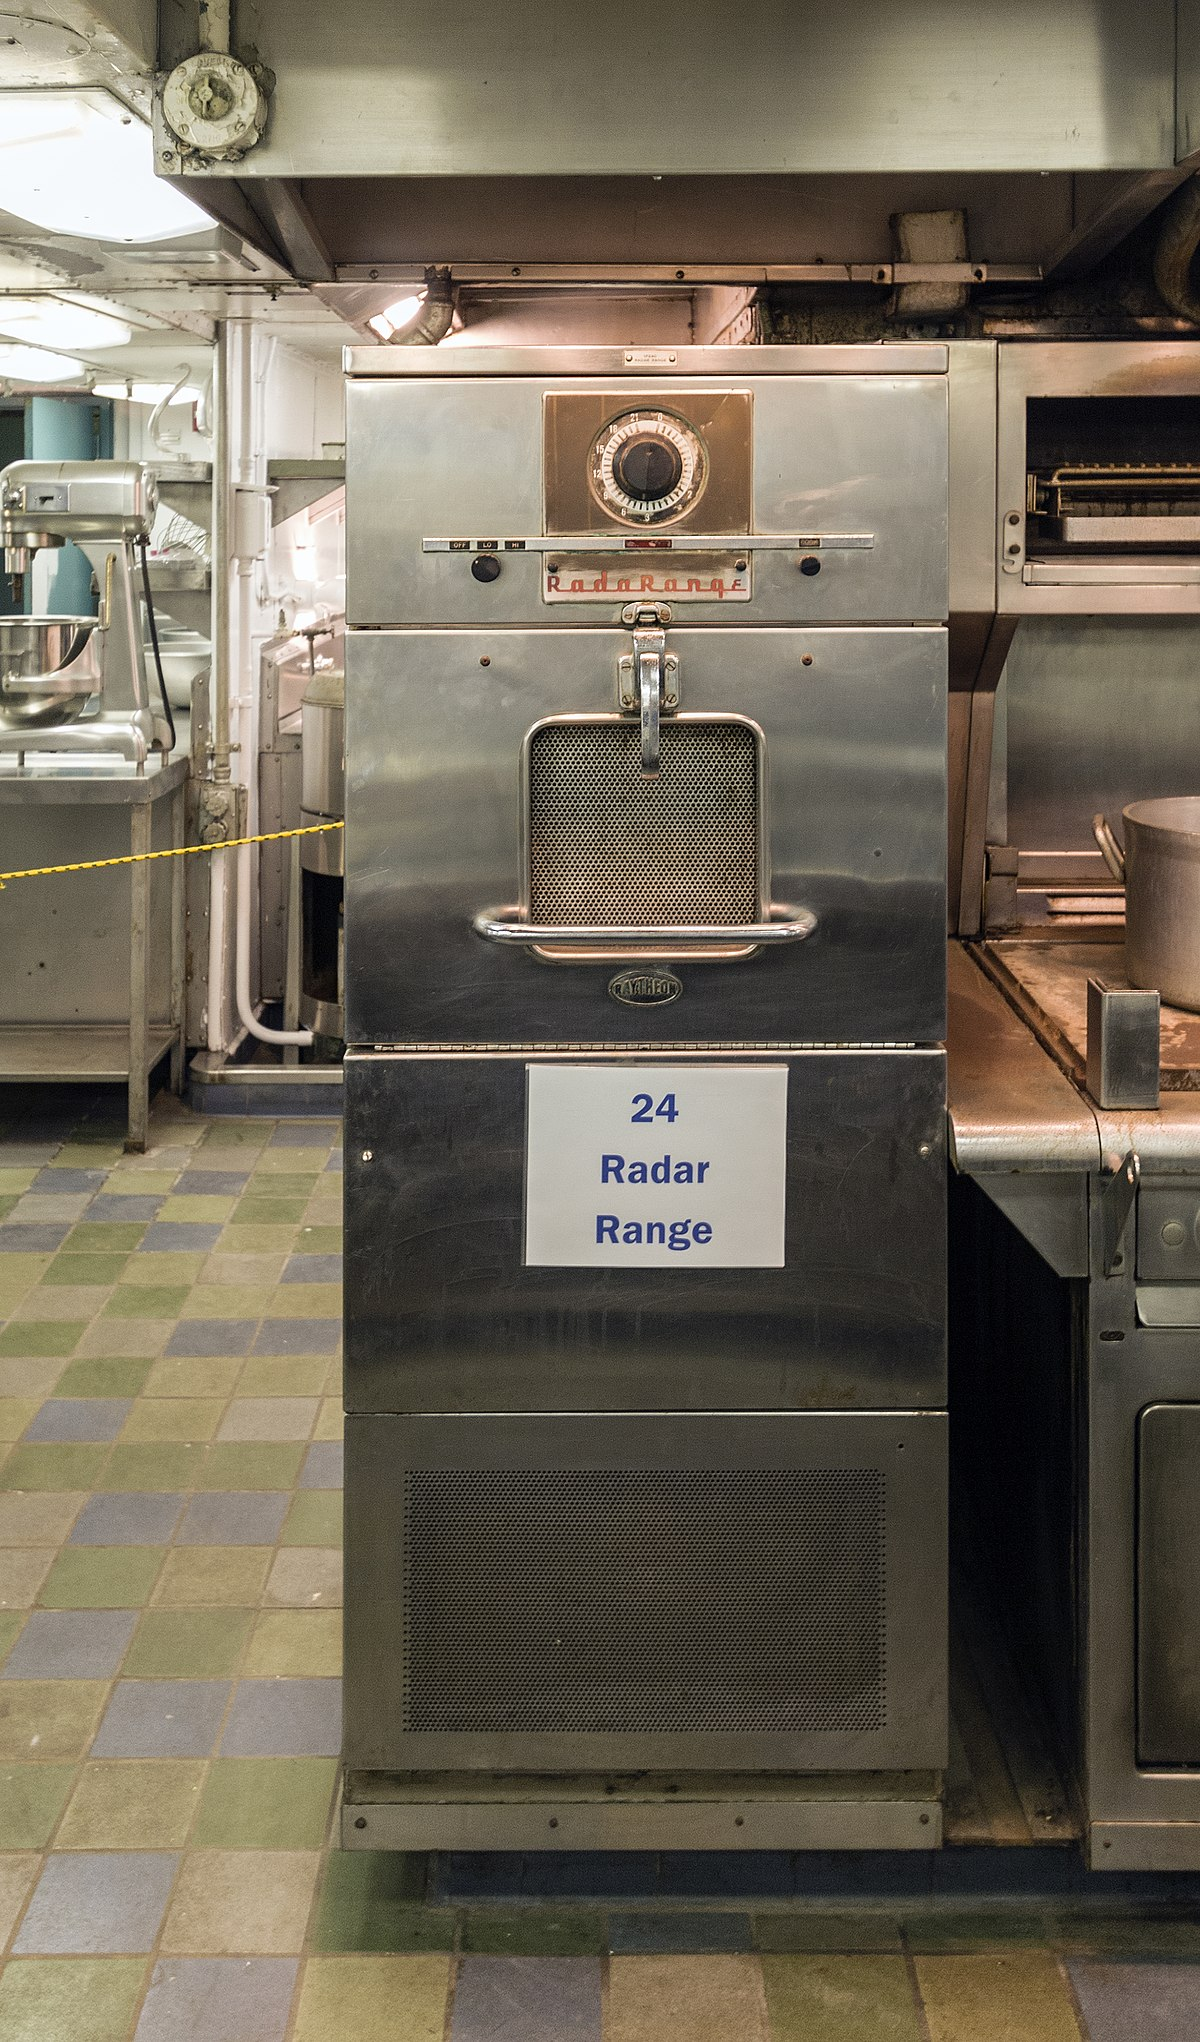 Commercial Kitchen Equipment Cleaning Services